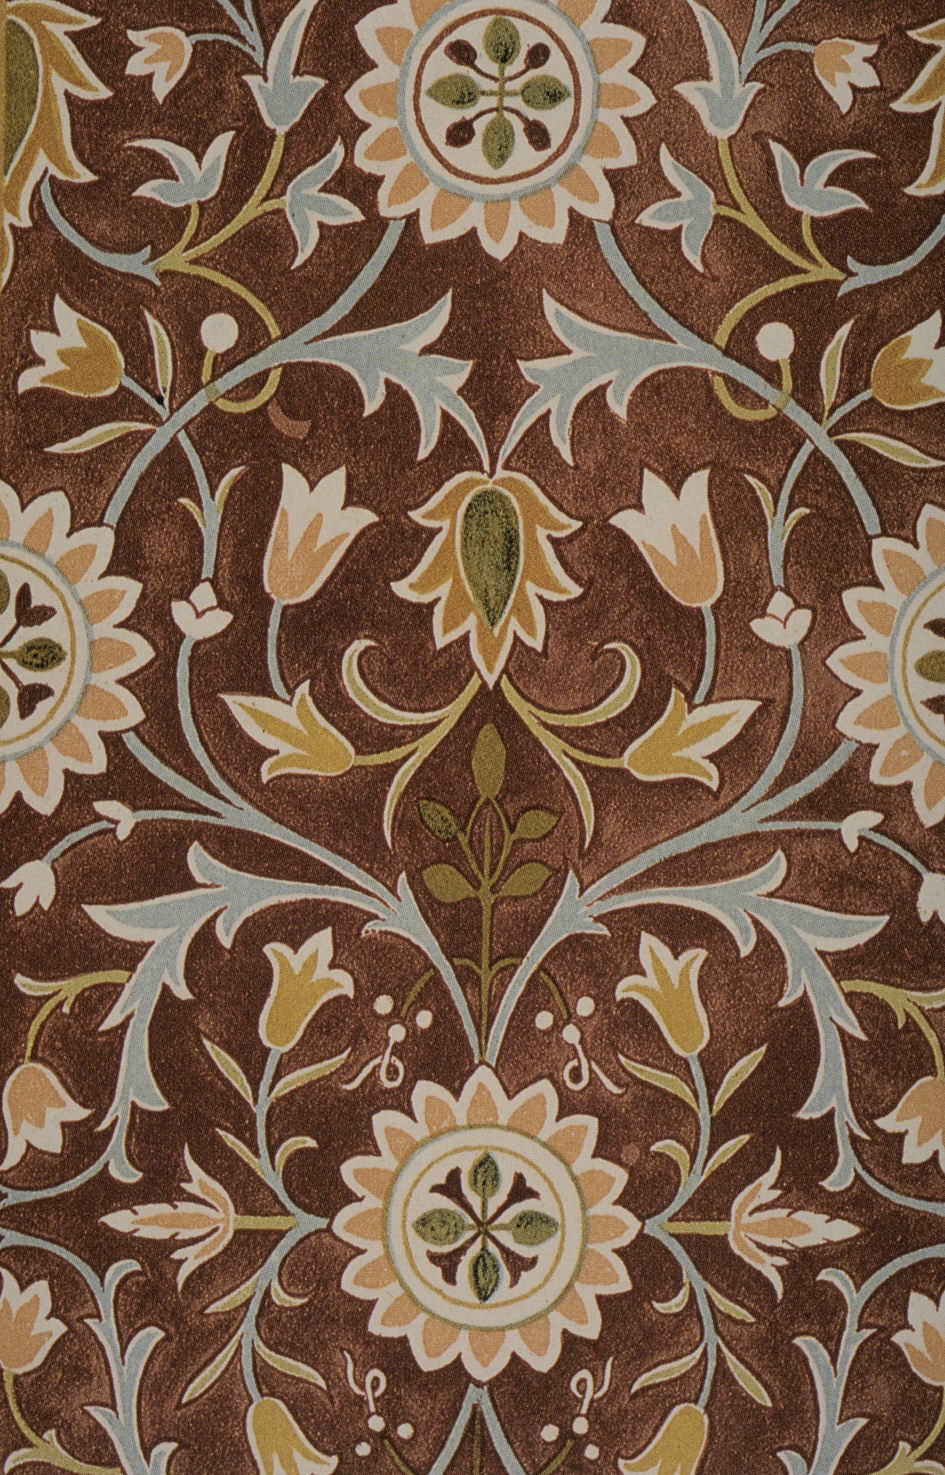 Carpet Design Alluring Filemorris Little Flower Carpet Design Detail  Wikimedia Commons 2017